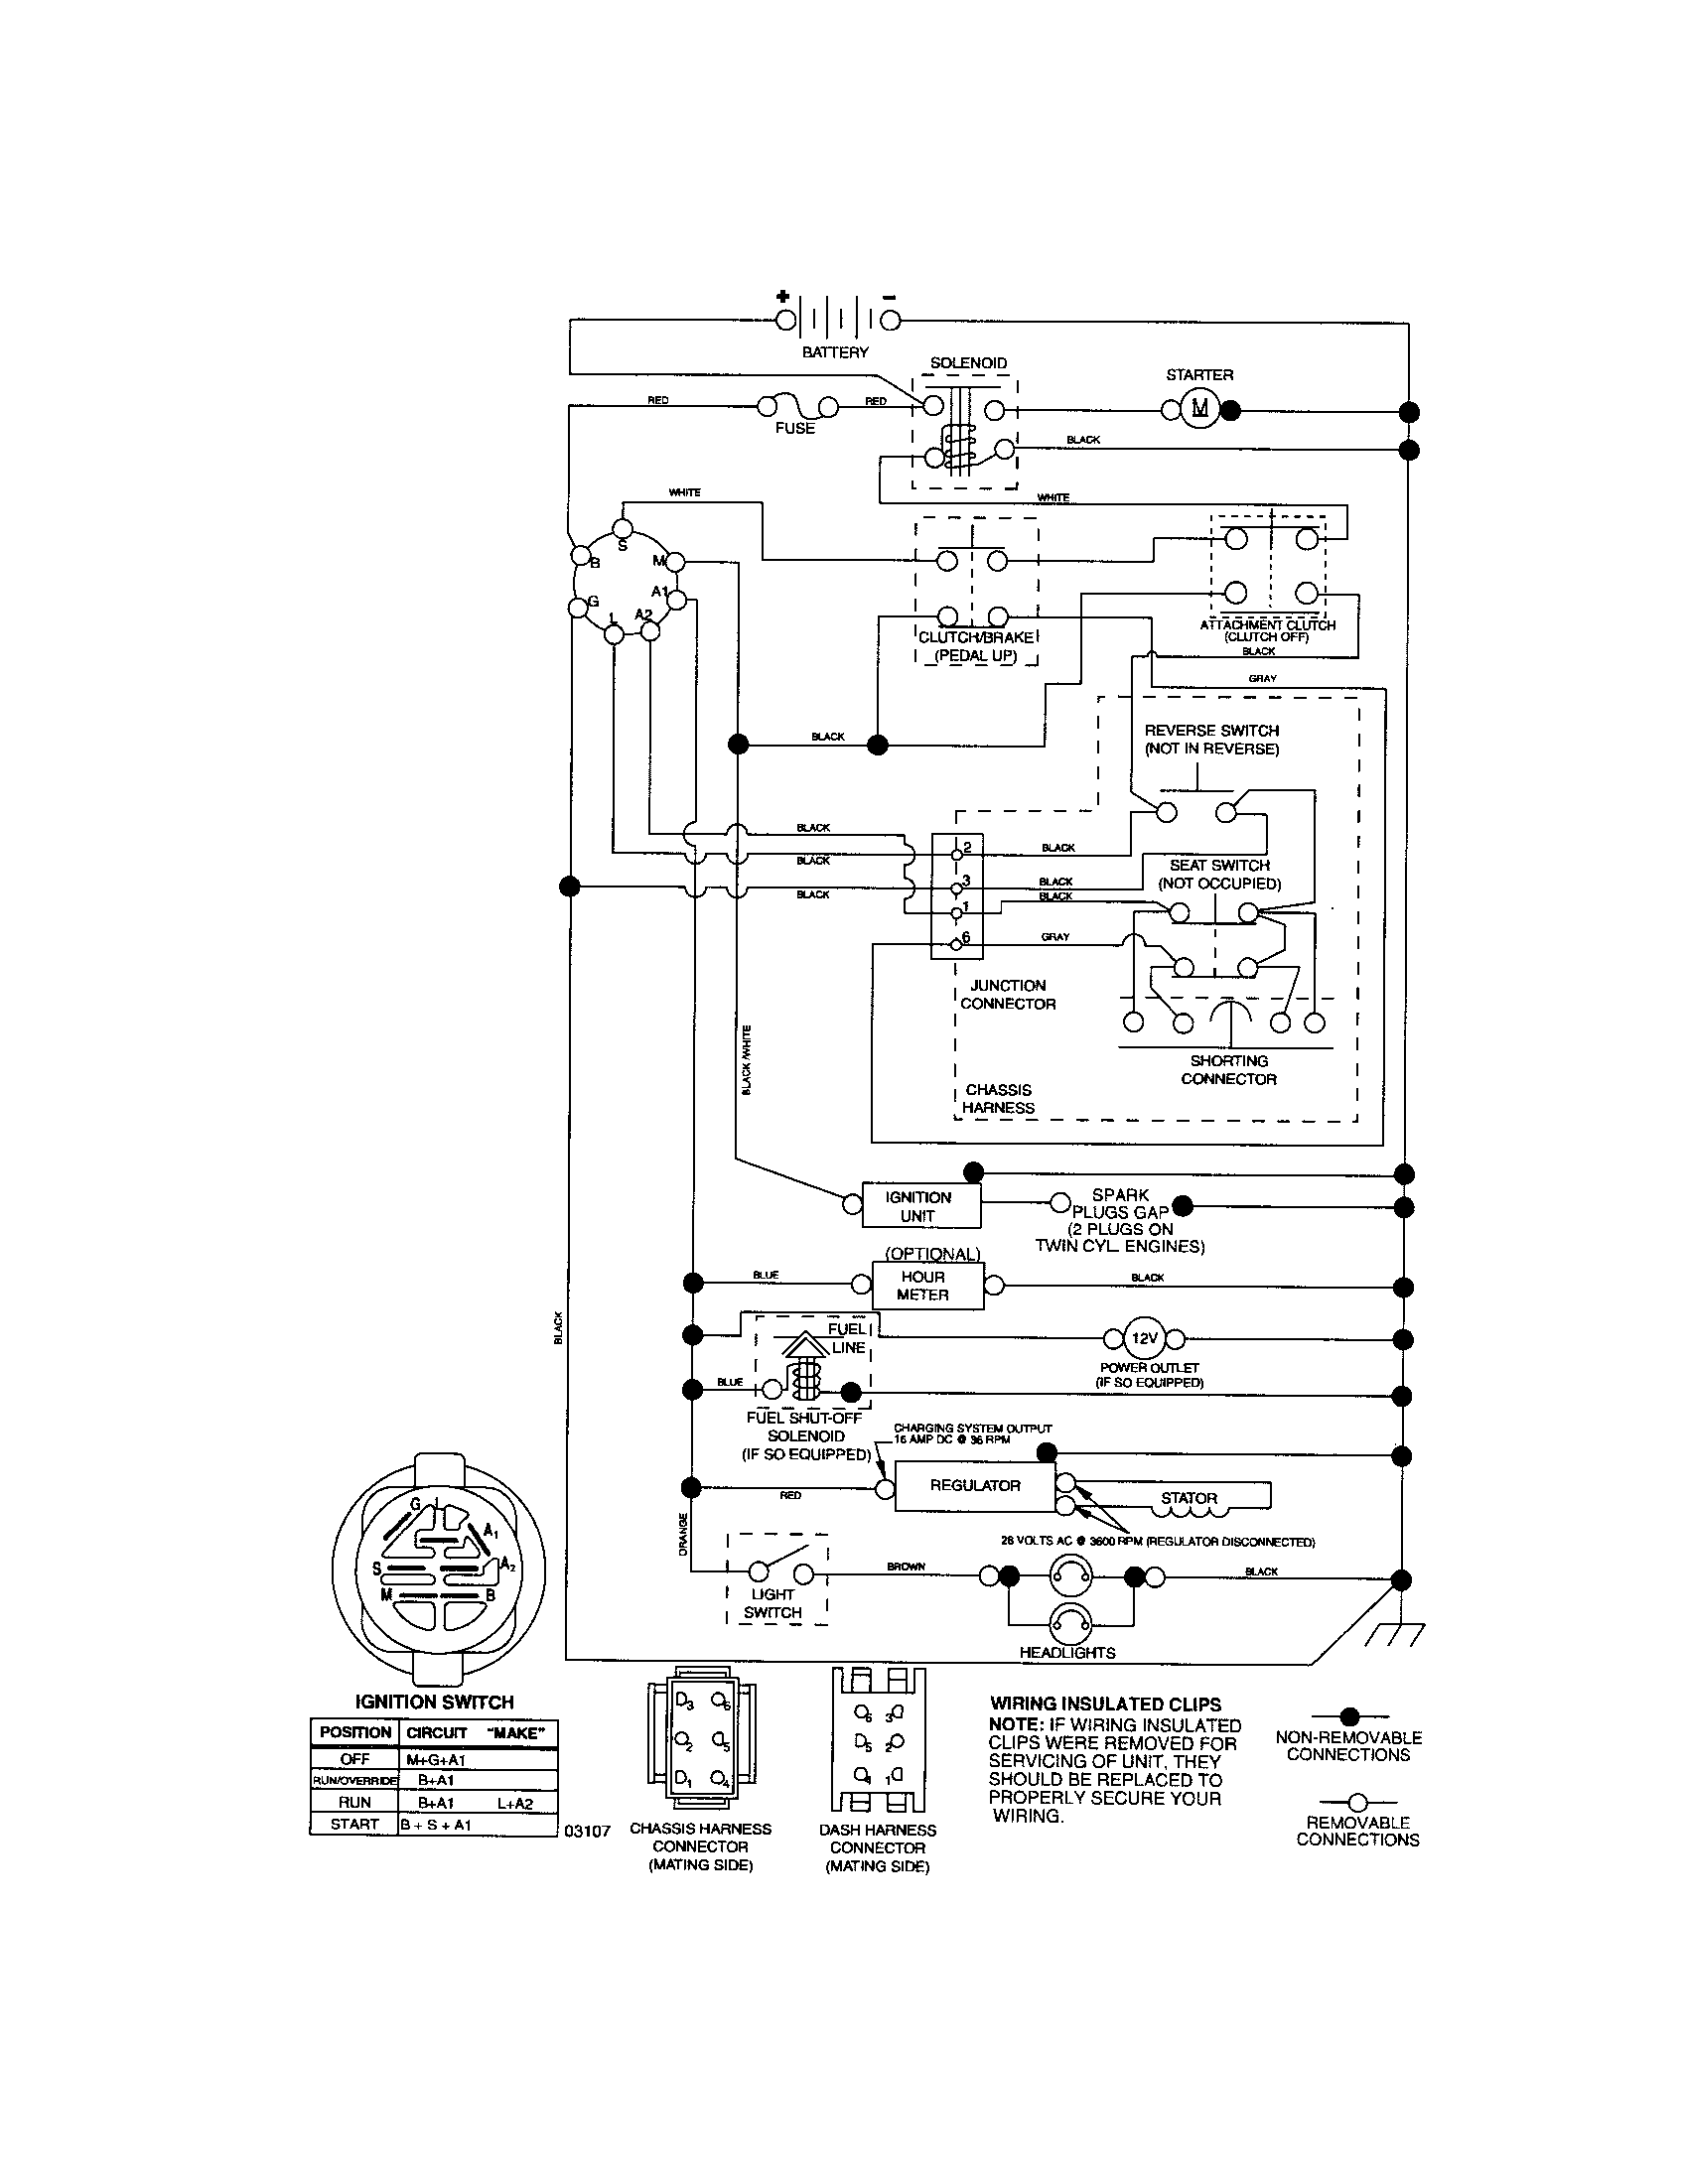 body shop wiring diagram layout wiring diagrams u2022 rh laurafinlay co uk 1962  Ford Truck Brake Lamp Wiring 2001 Ford Truck Wiring Diagrams